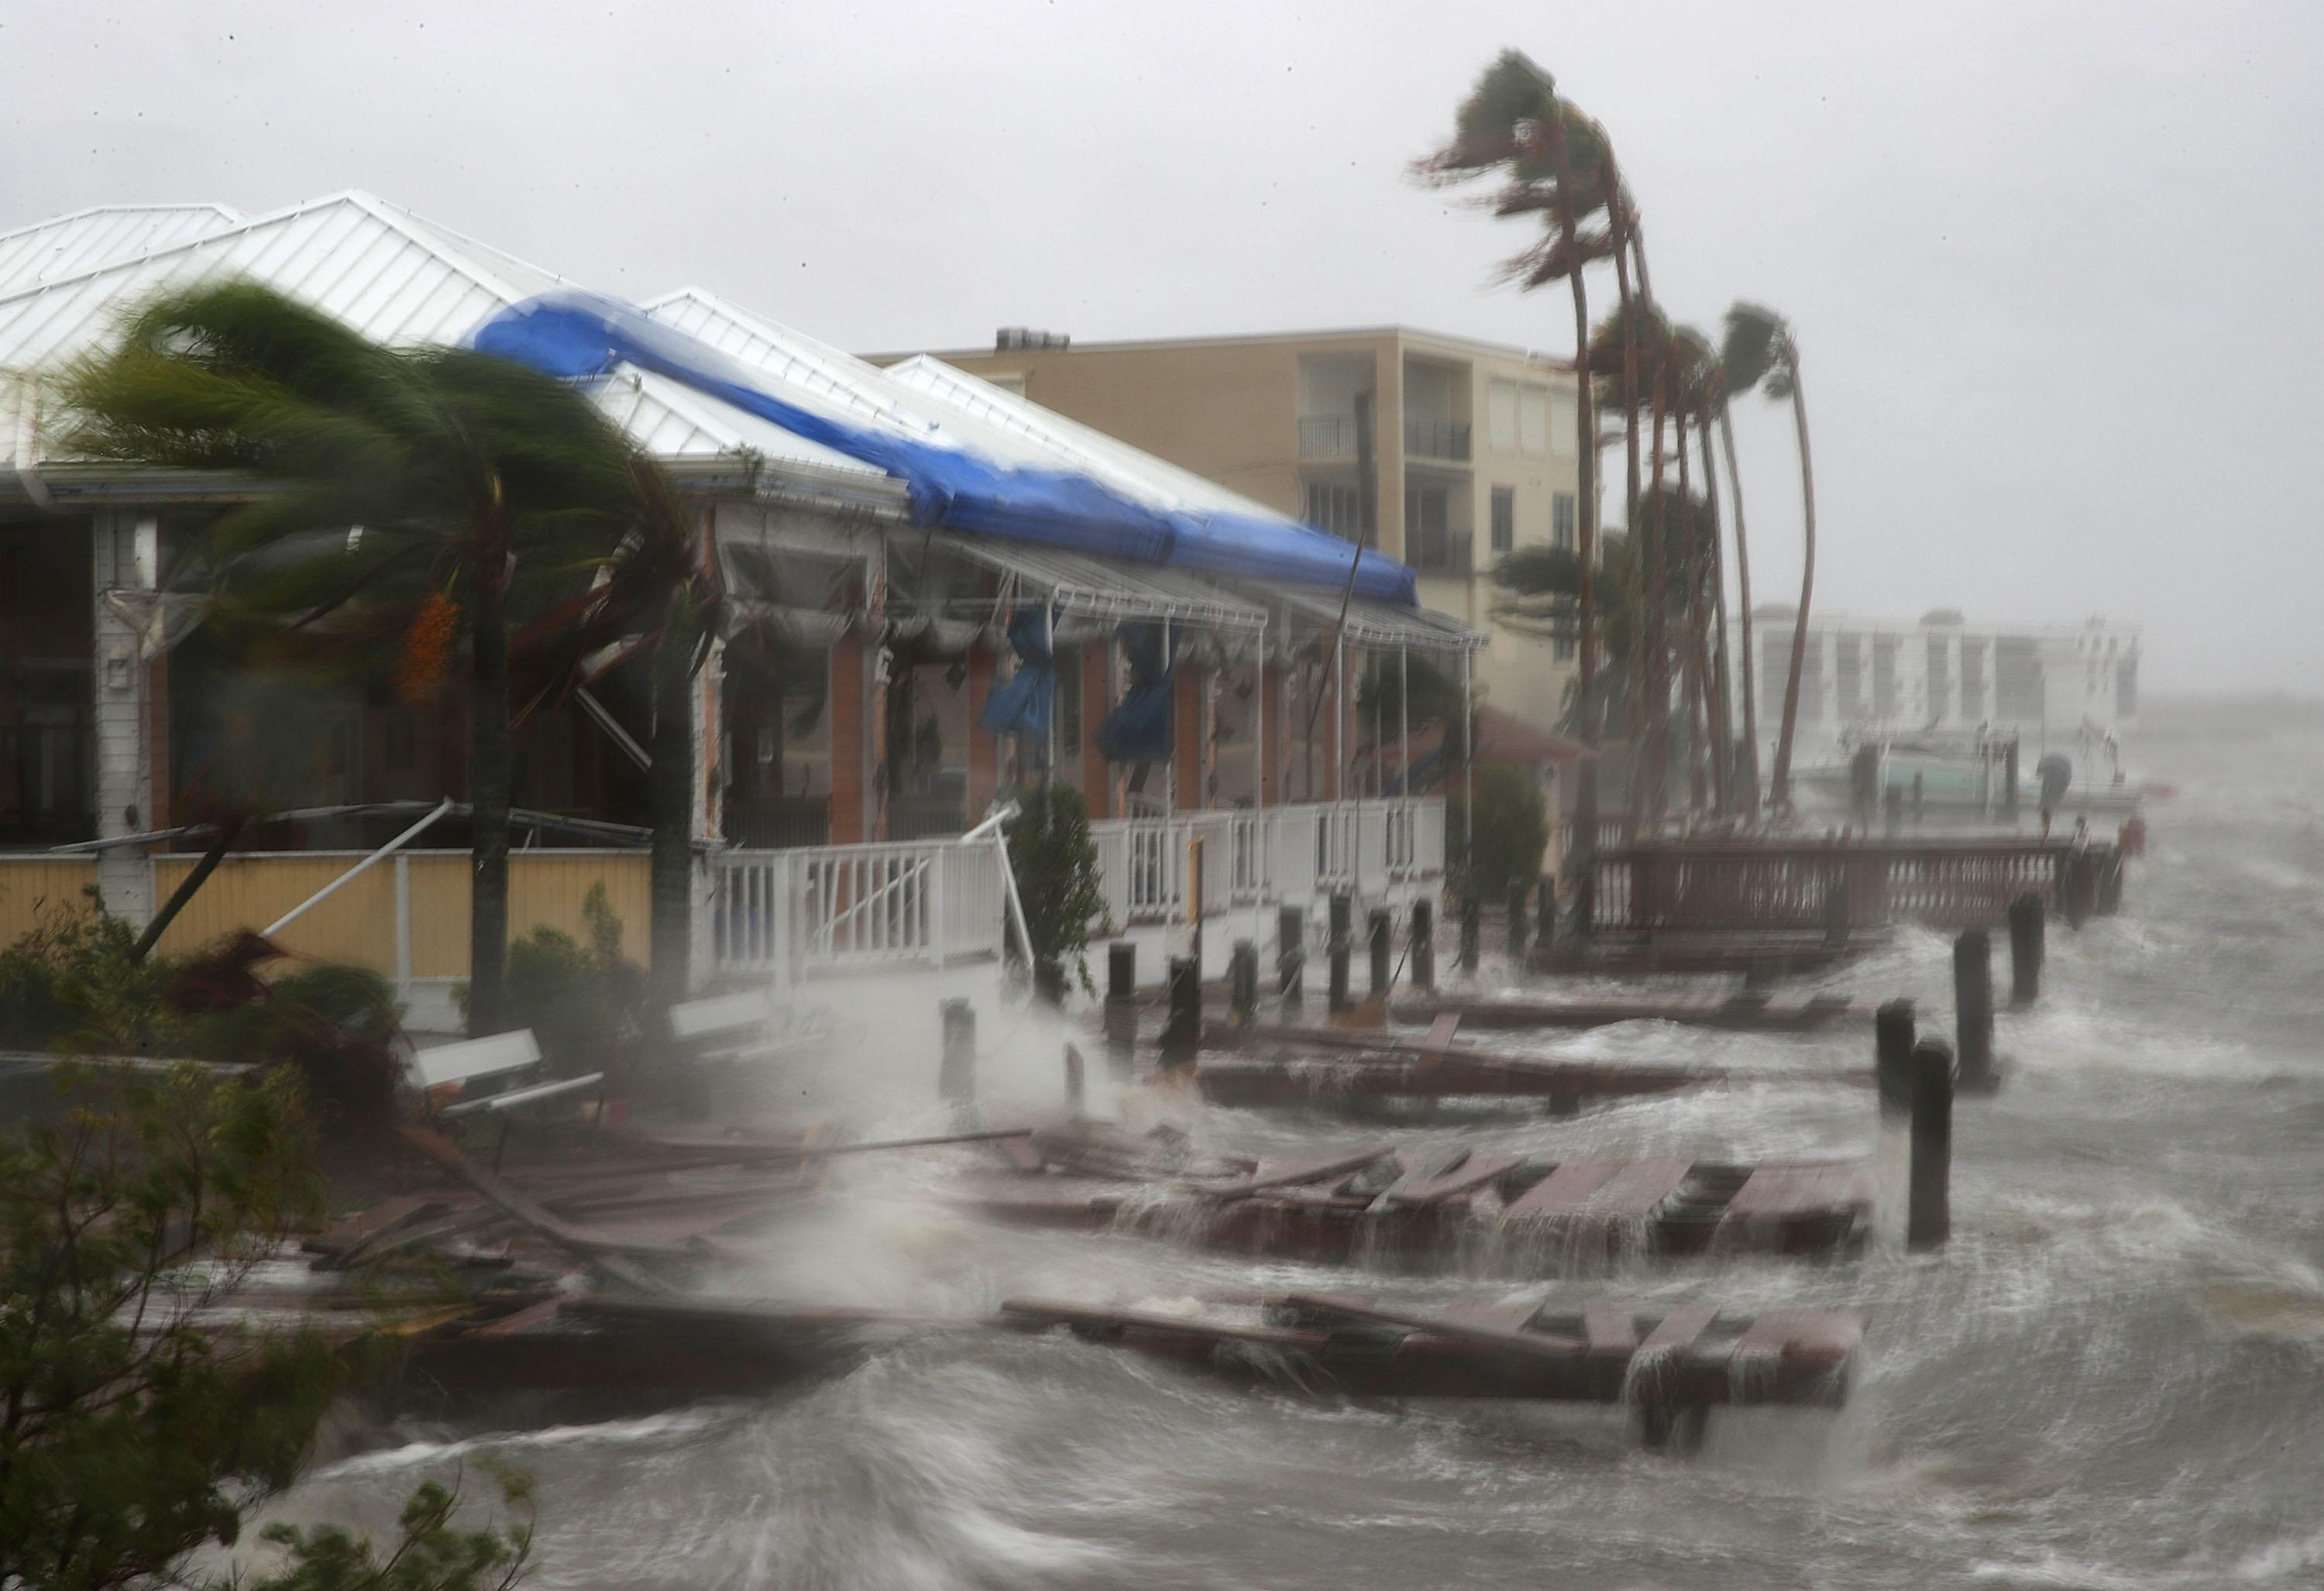 <p>Heavy waves caused by Hurricane Matthew pounds the boat docks at the Sunset Bar and Grill, Oct. 7, 2016 on Cocoa Beach, Fla. Hurricane Matthew passed by offshore as a catagory 3 hurricane bringing heavy winds and minor flooding. (Photo: Mark Wilson/Getty Images) </p>